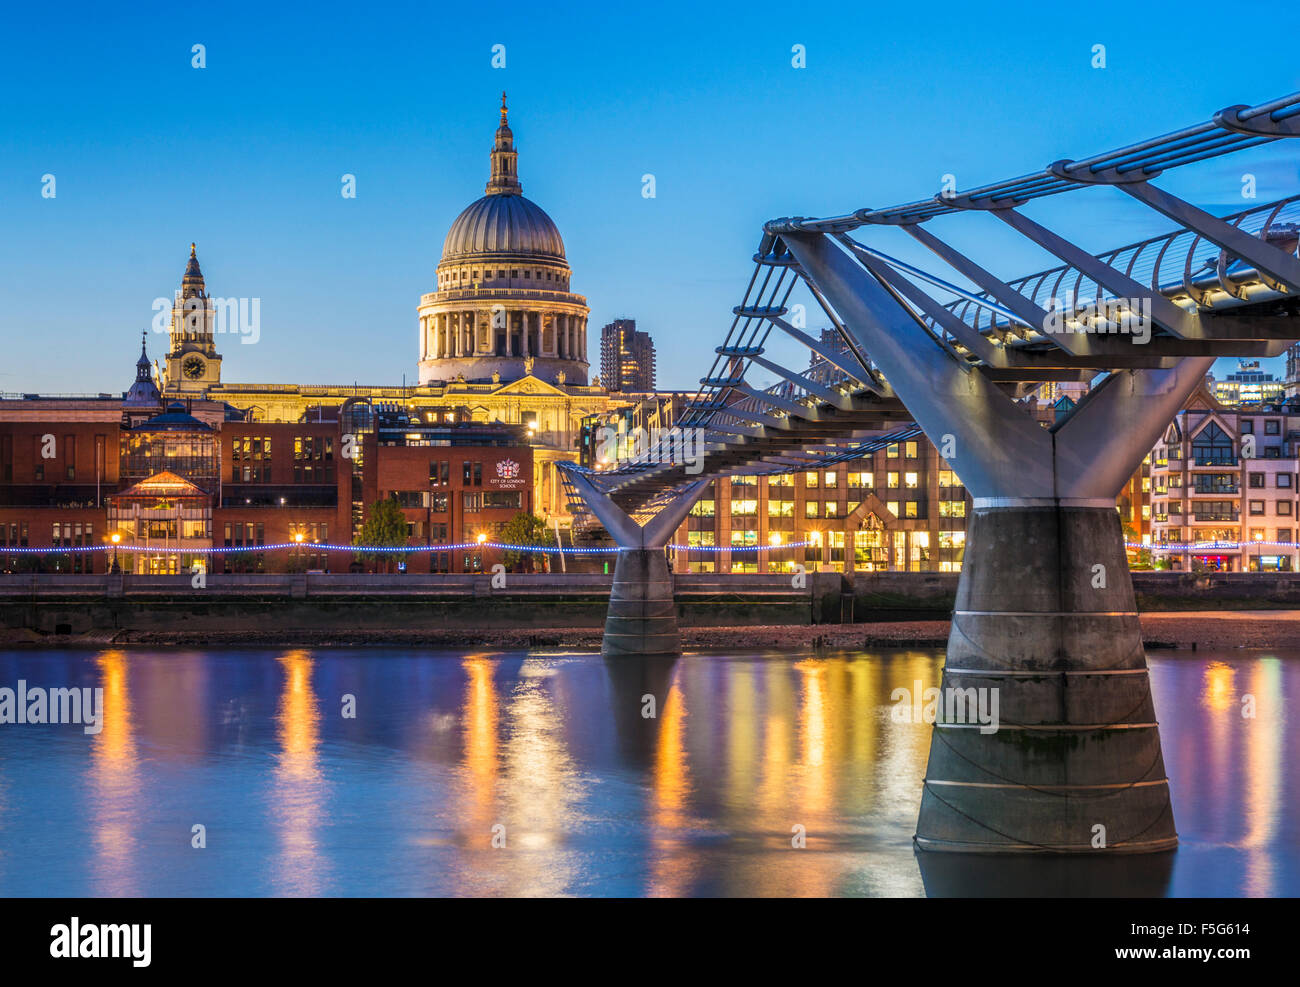 Cathédrale St Paul millennium bridge et City of London Skyline at night Tamise Ville de London UK GB EU Europe Photo Stock